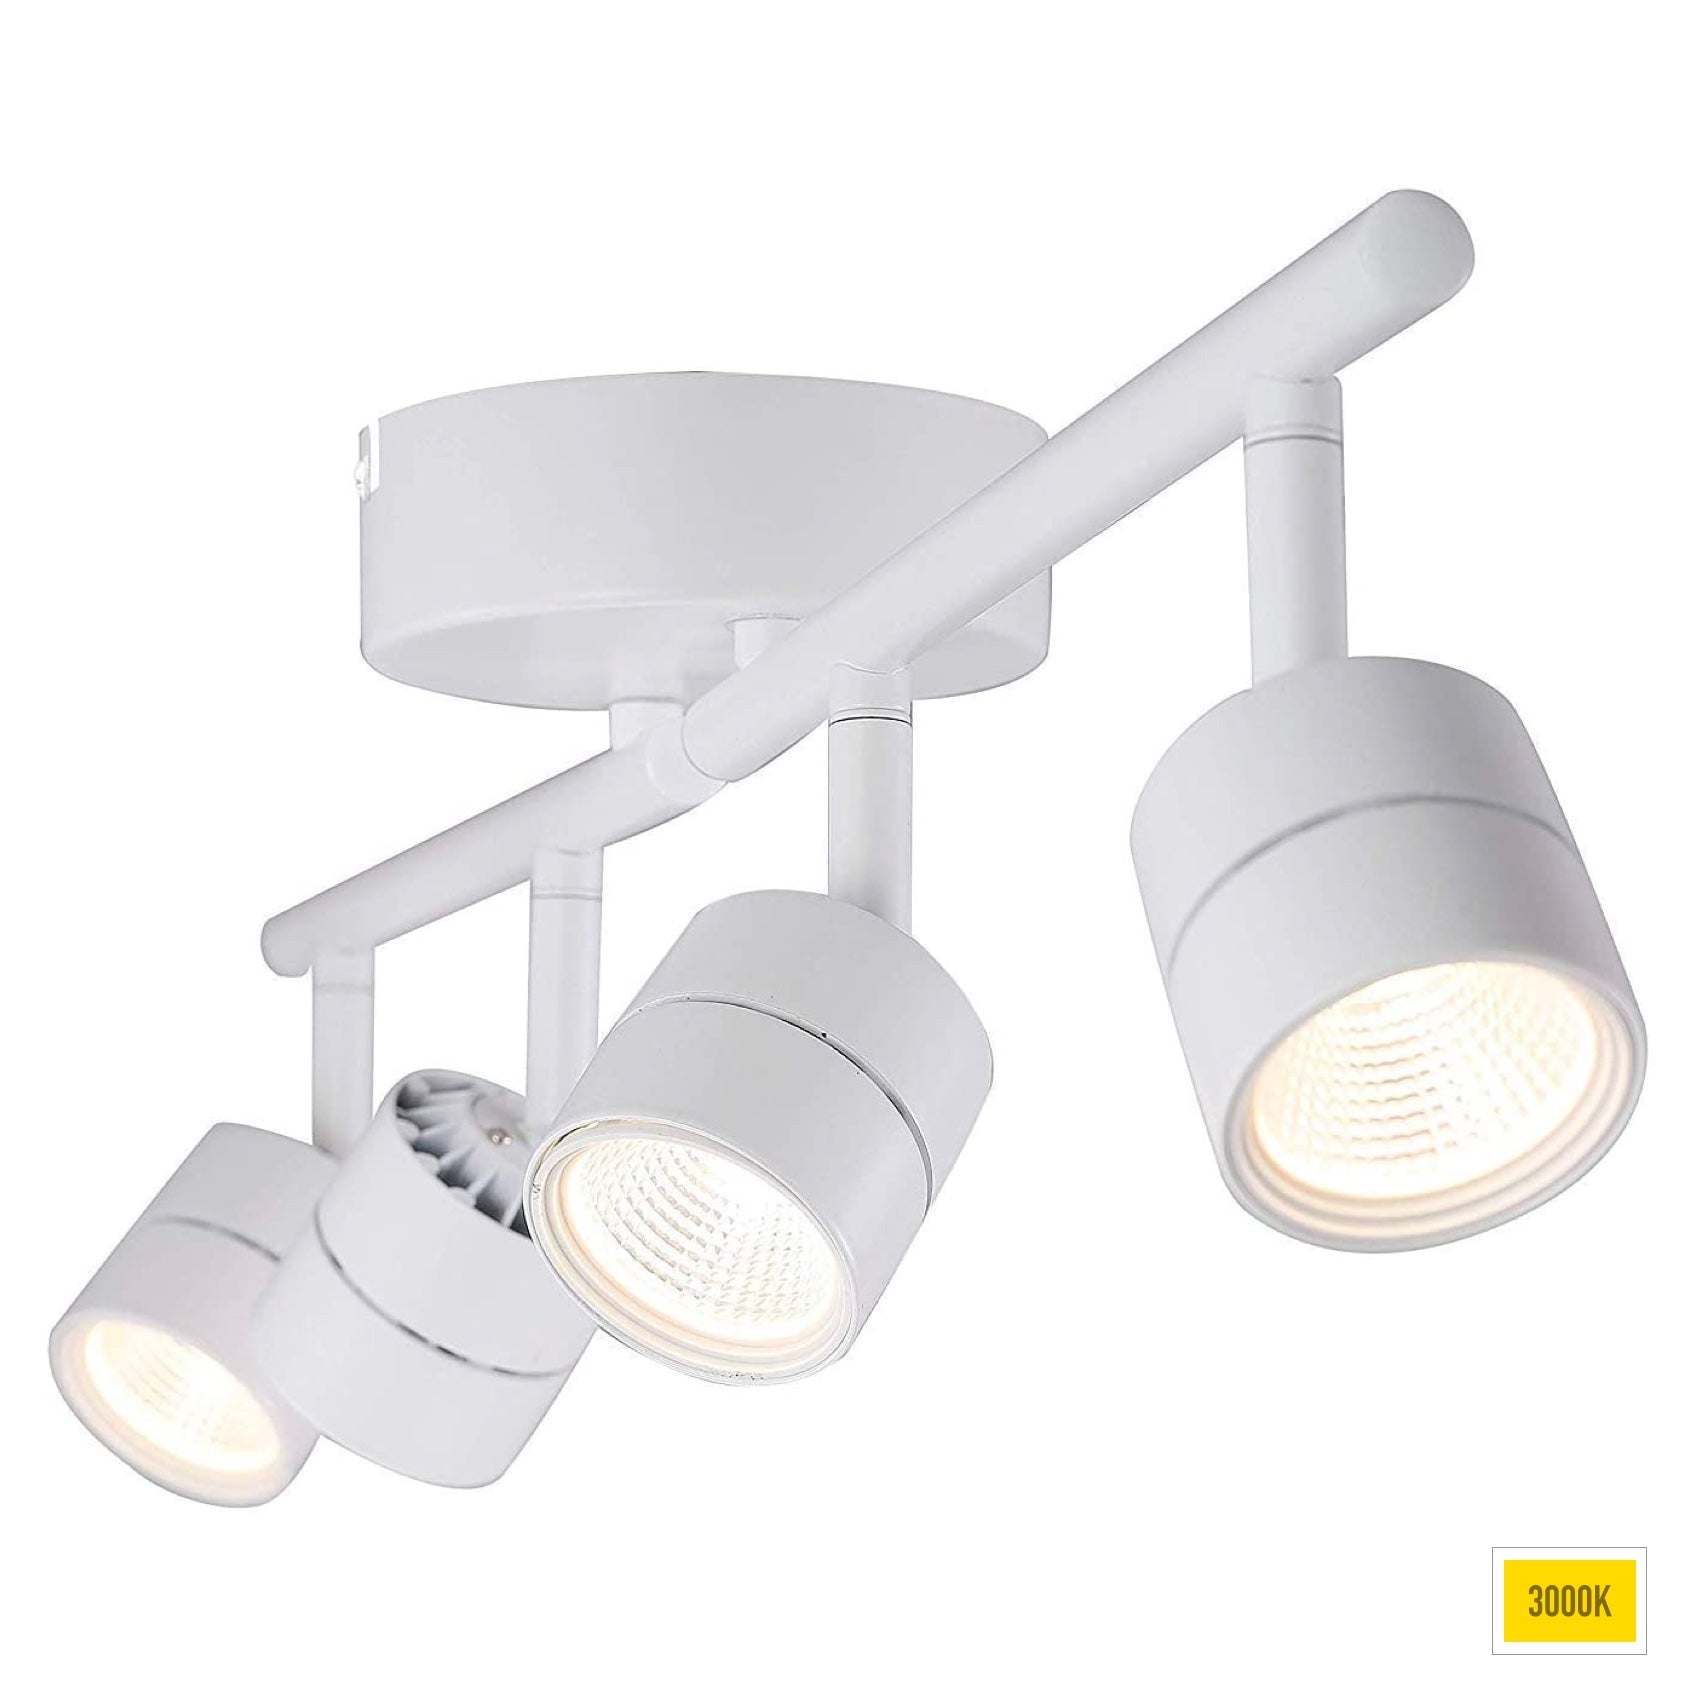 30W 4-head LED Ceiling Dimmable Track Light, ETL, Narrow Flood Light, 2400lm 3000K CRI90, Flexibly Rotatable Light Head, for Accent / Decorative Lighting